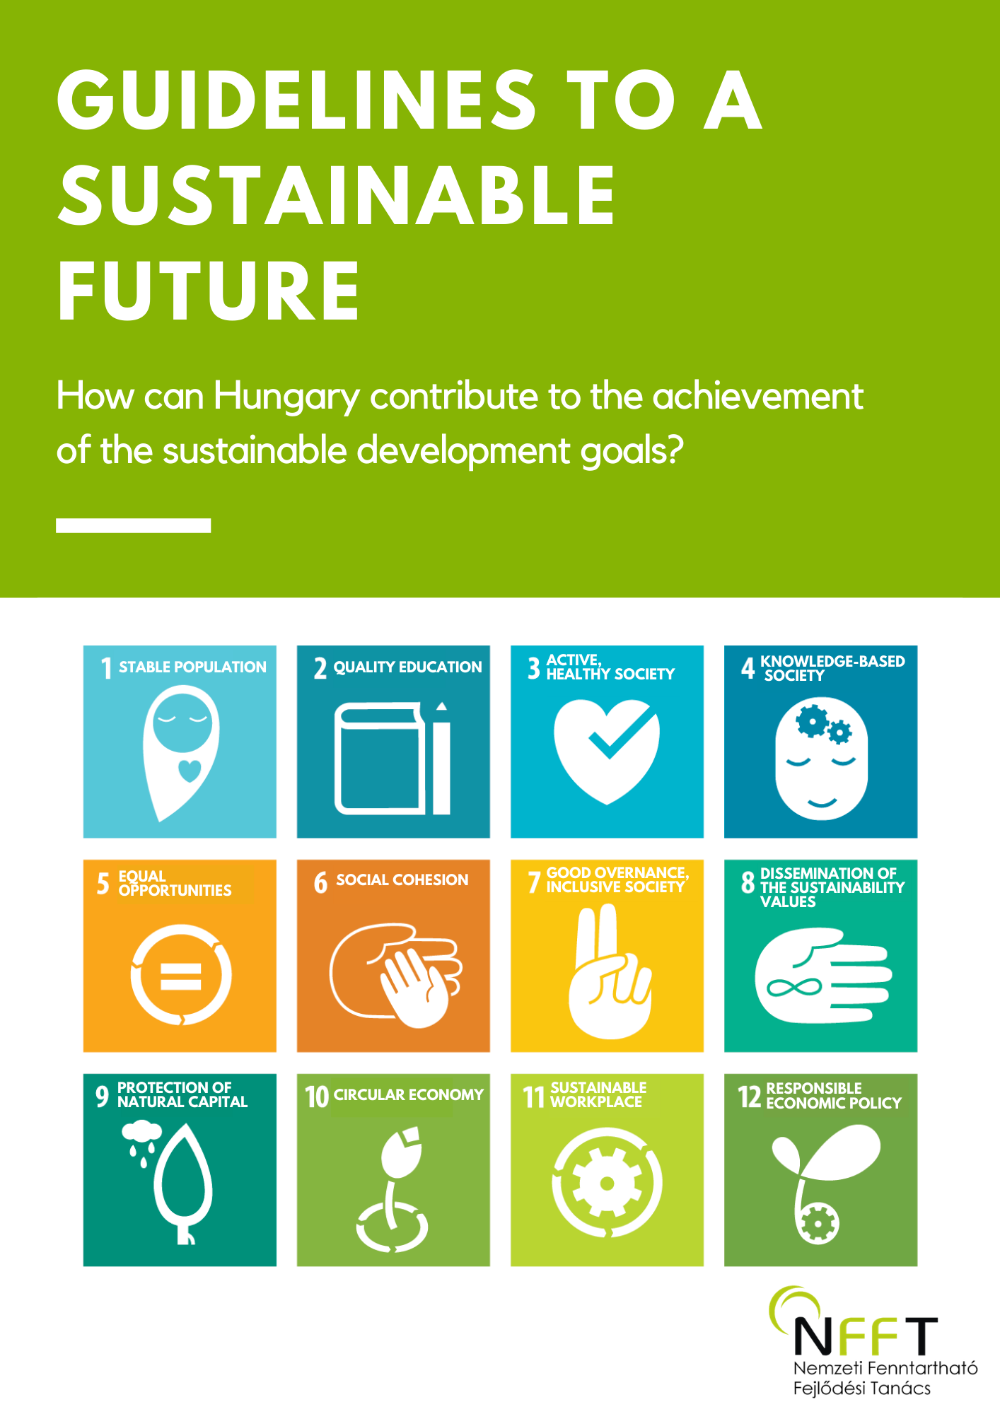 GUIDELINES TO A SUSTAINABLE FUTURE How can Hungary contribute to the achievement of the sustainable development goals_